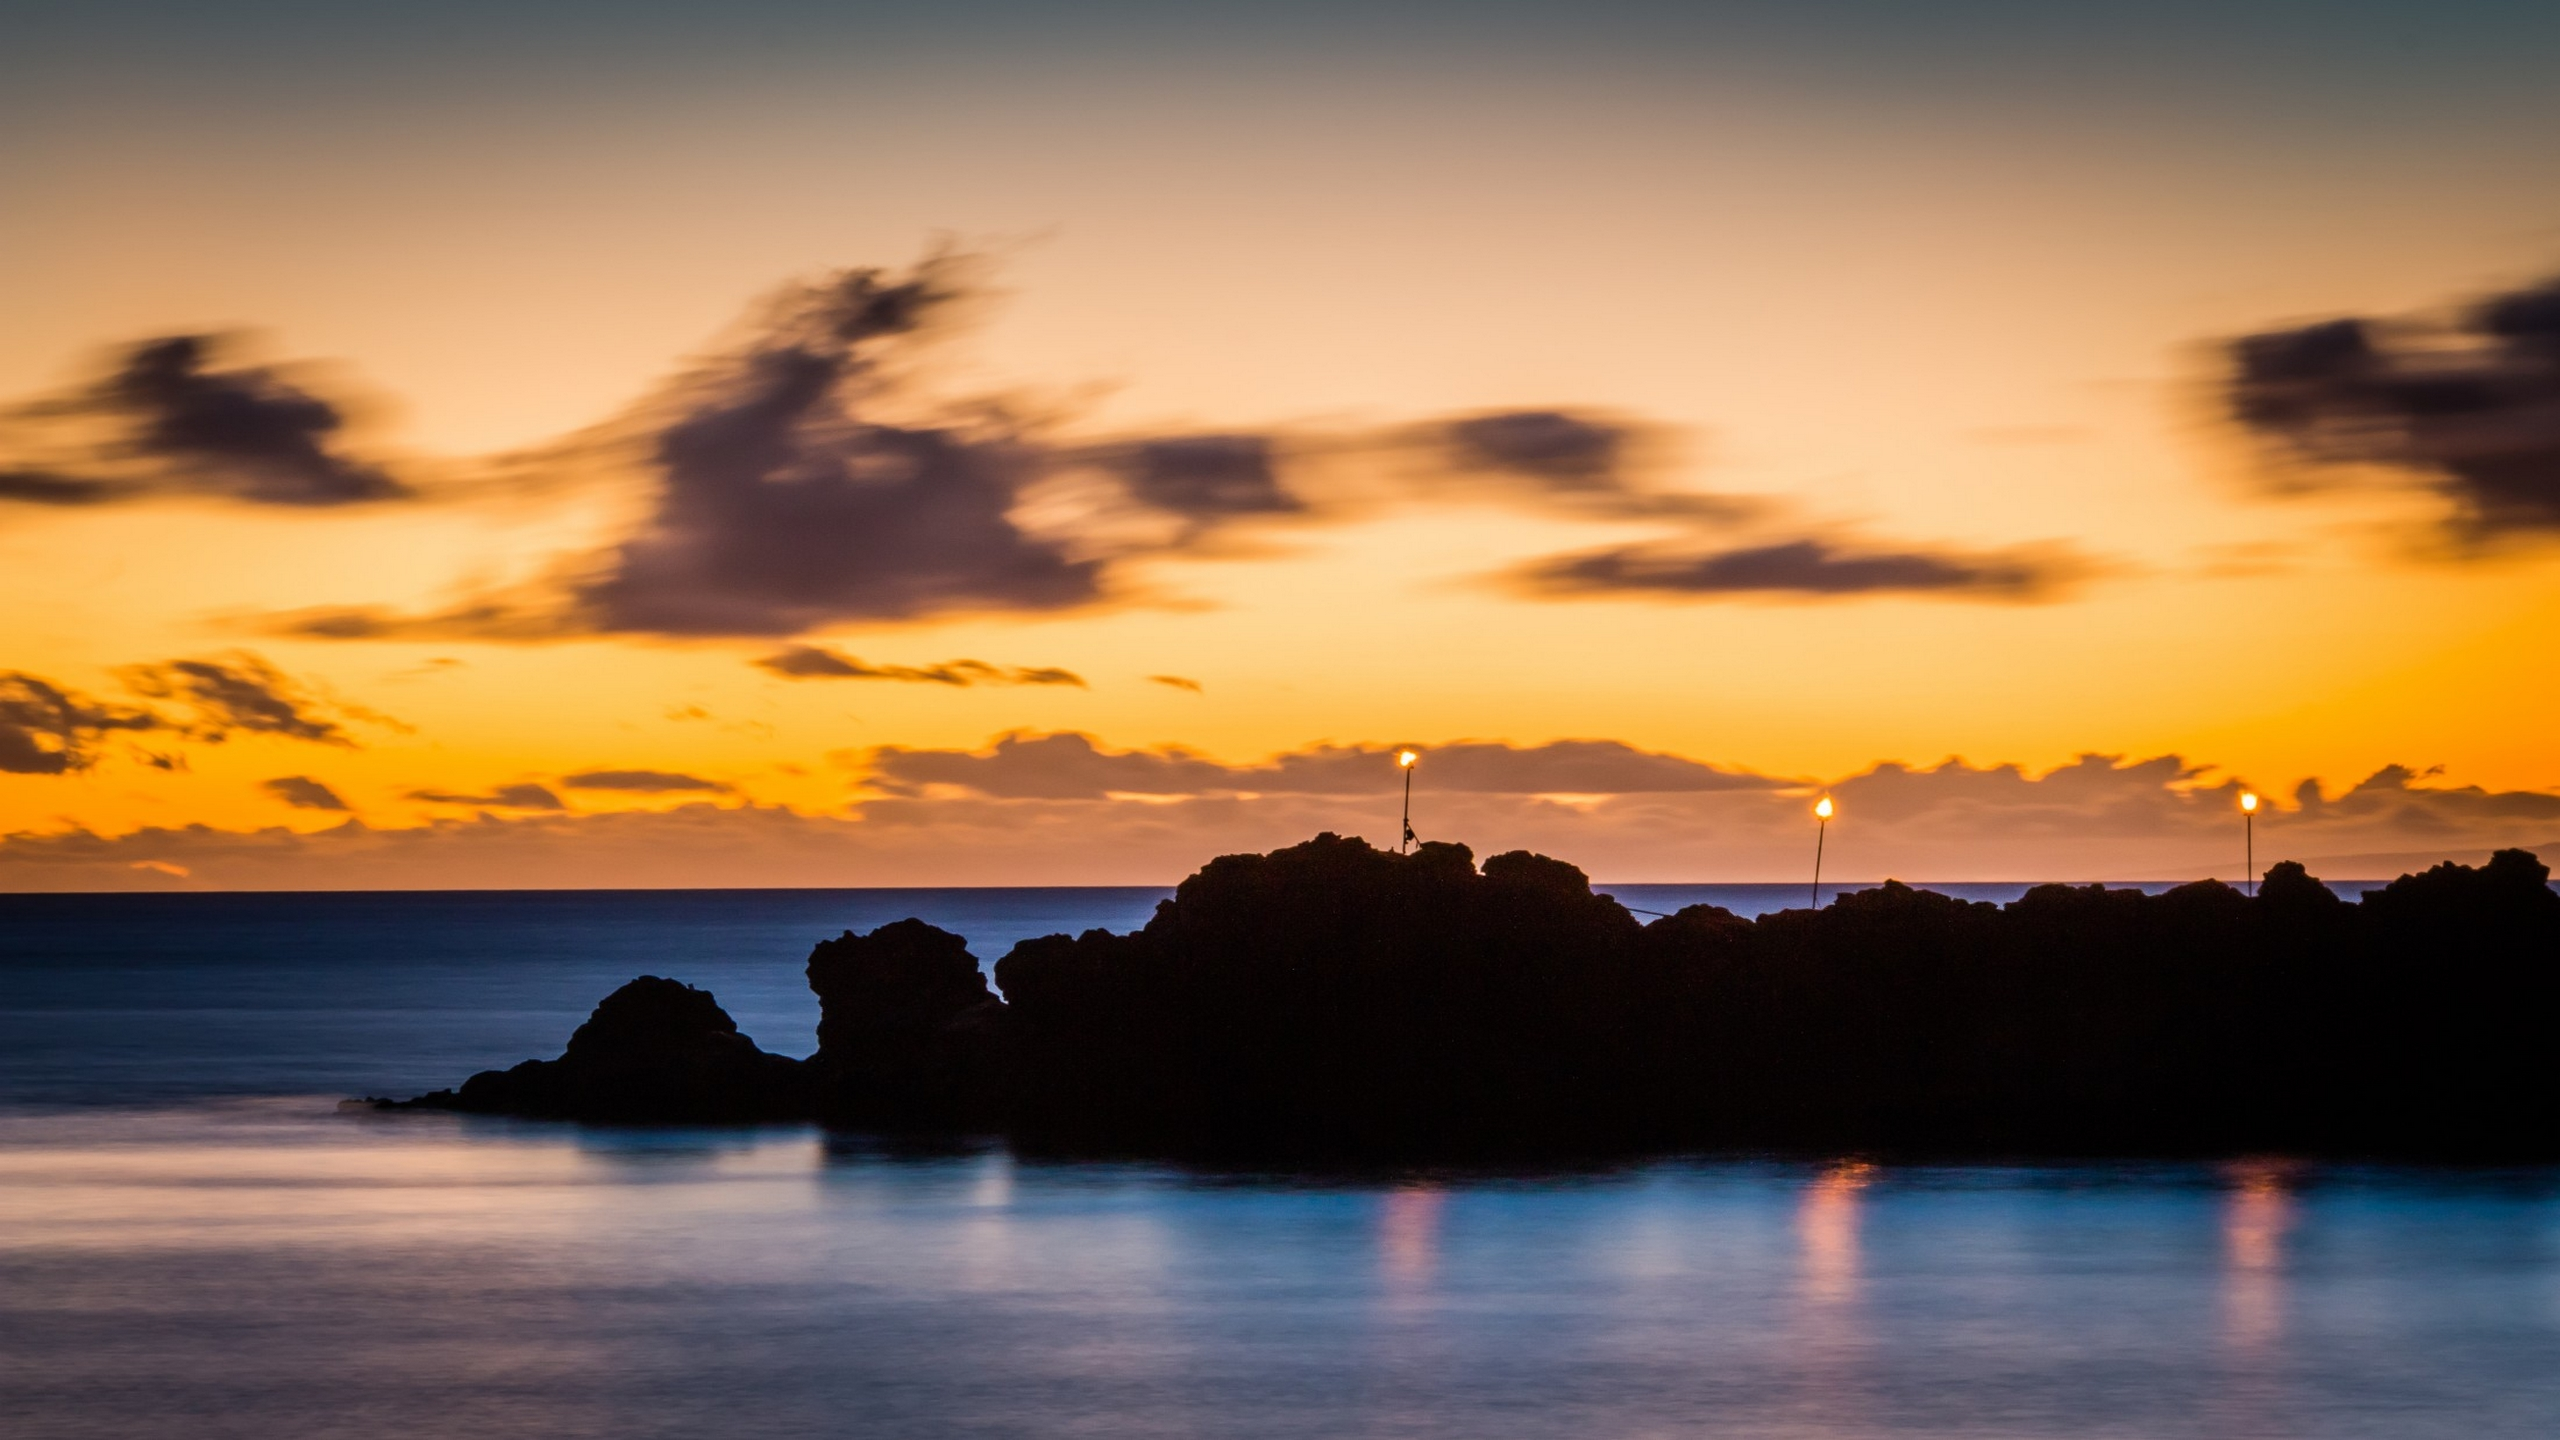 Sunset over Black Rock at Kaanapali Beach Hawaii [2560x1440 2560x1440